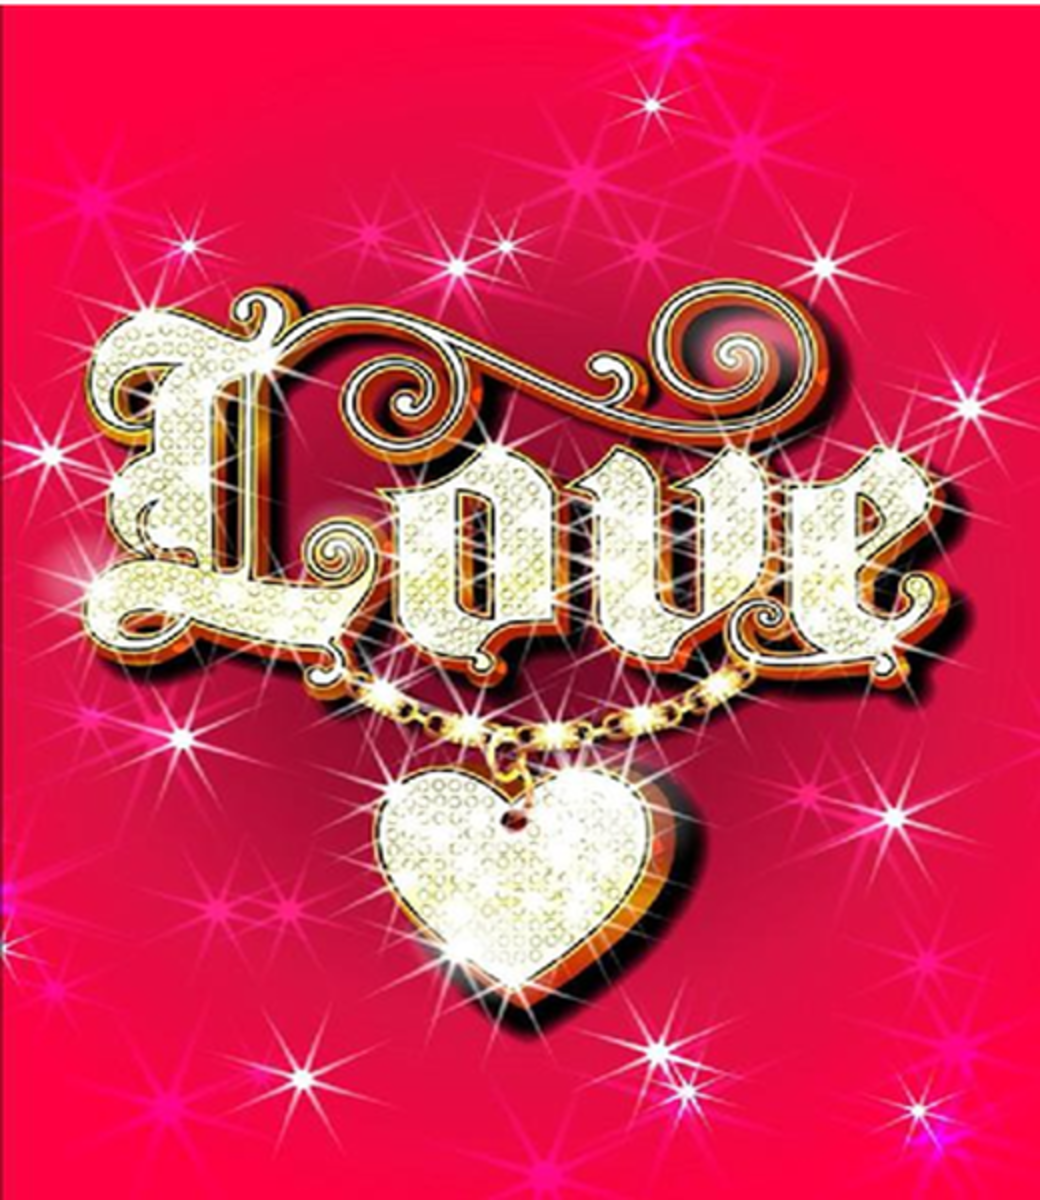 Love and Heart Graphic